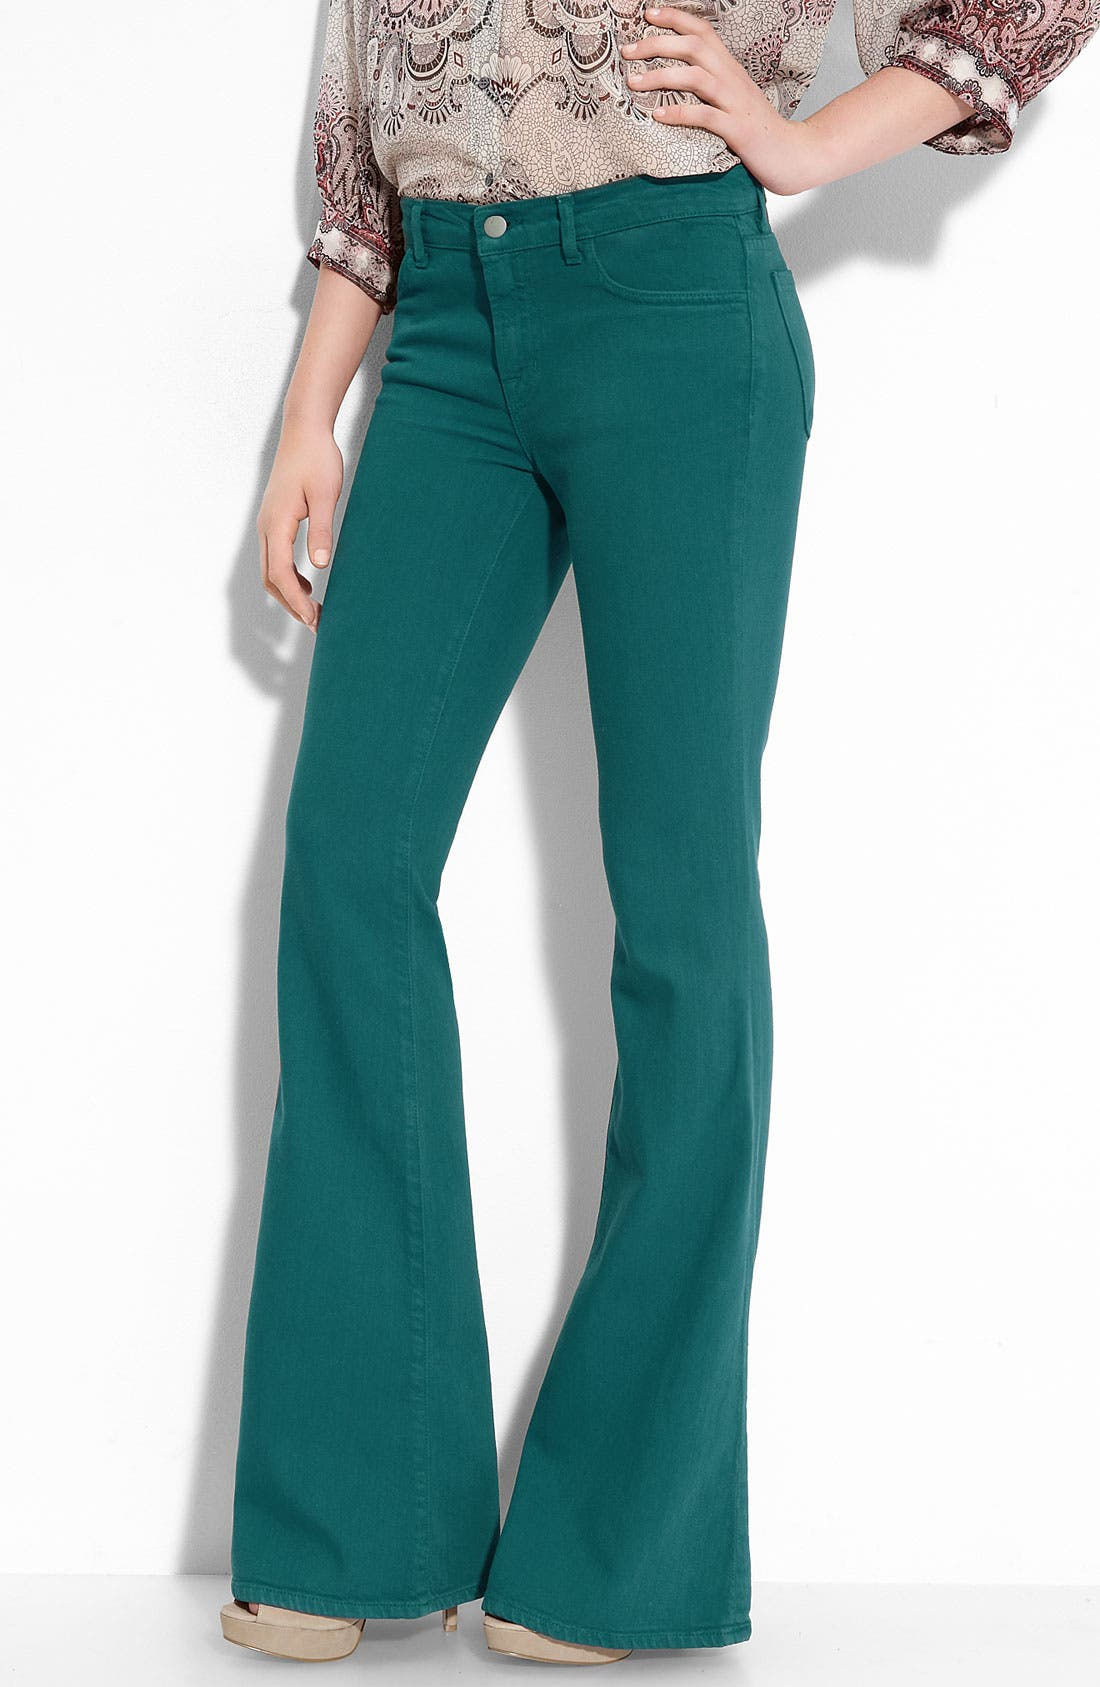 Alternate Image 1 Selected - J Brand Mid Rise Flare Leg Stretch Jeans